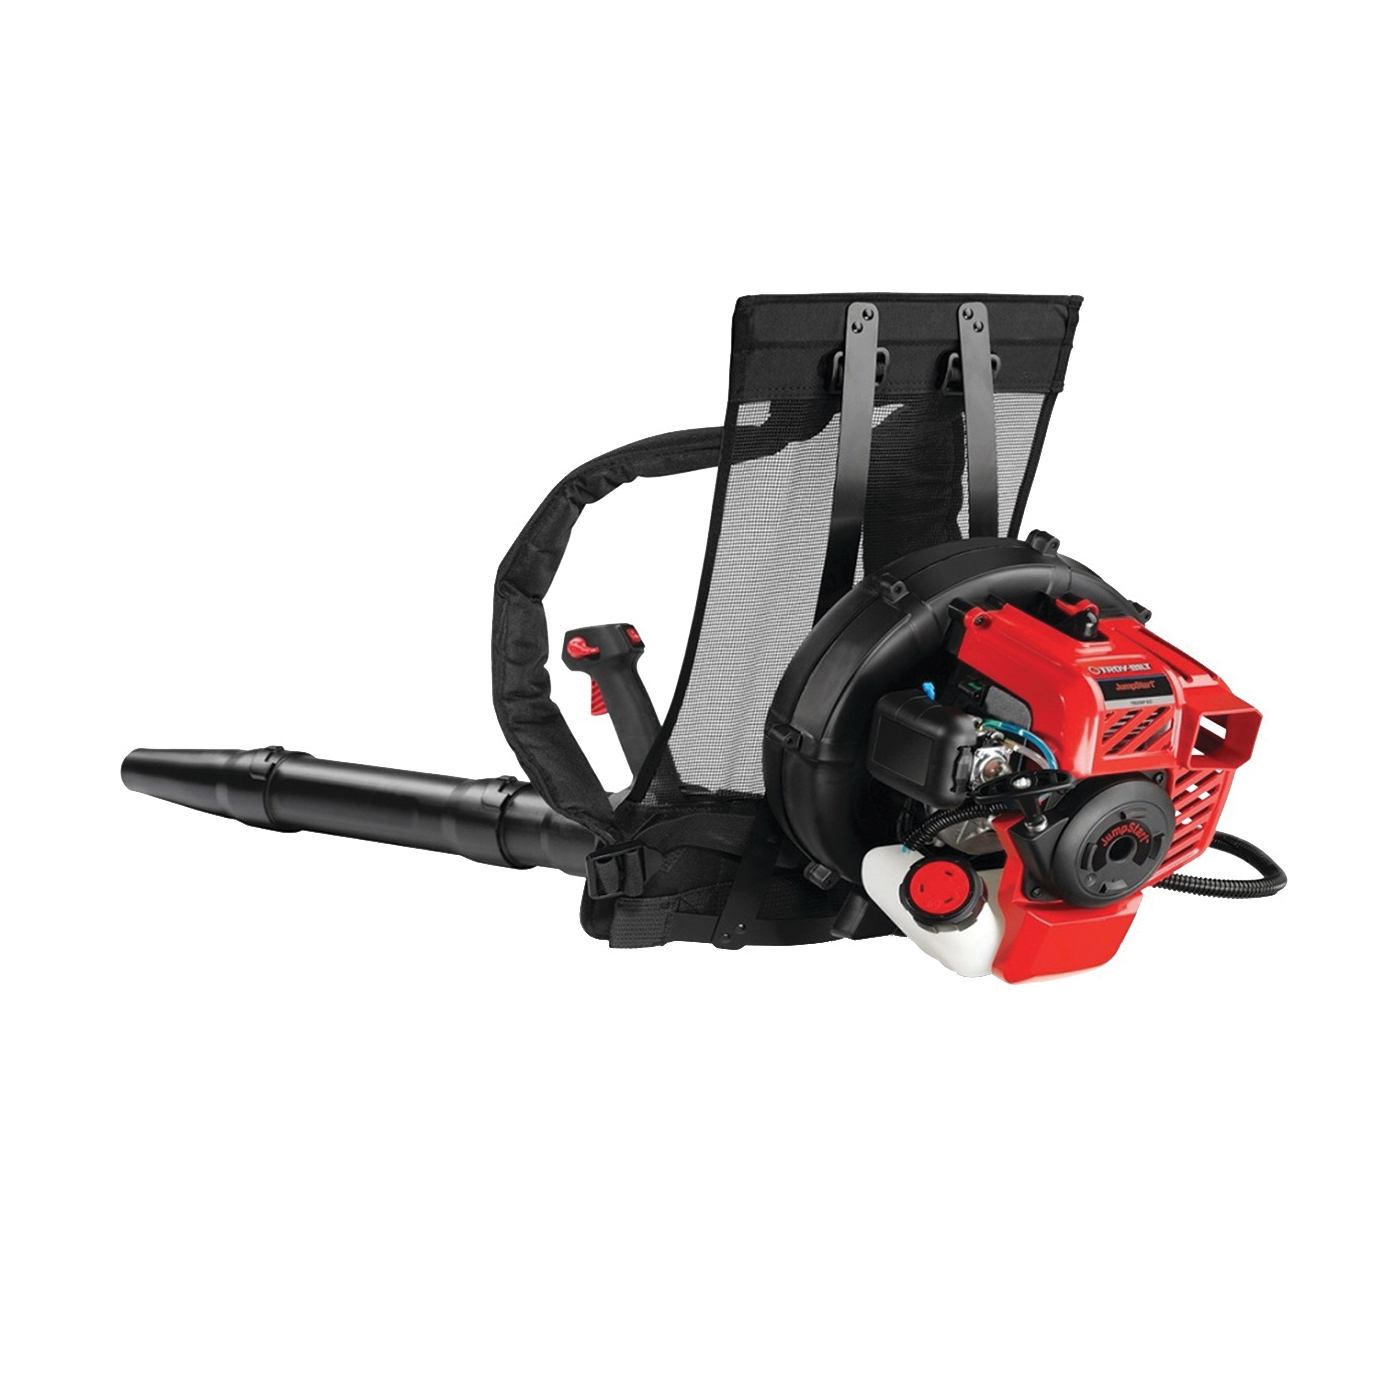 Picture of Troy-Bilt 41BR2BEG766 Backpack Leaf Blower, Gas, 27 cc Engine Displacement, 2-Cycle Engine, 445 cfm Air